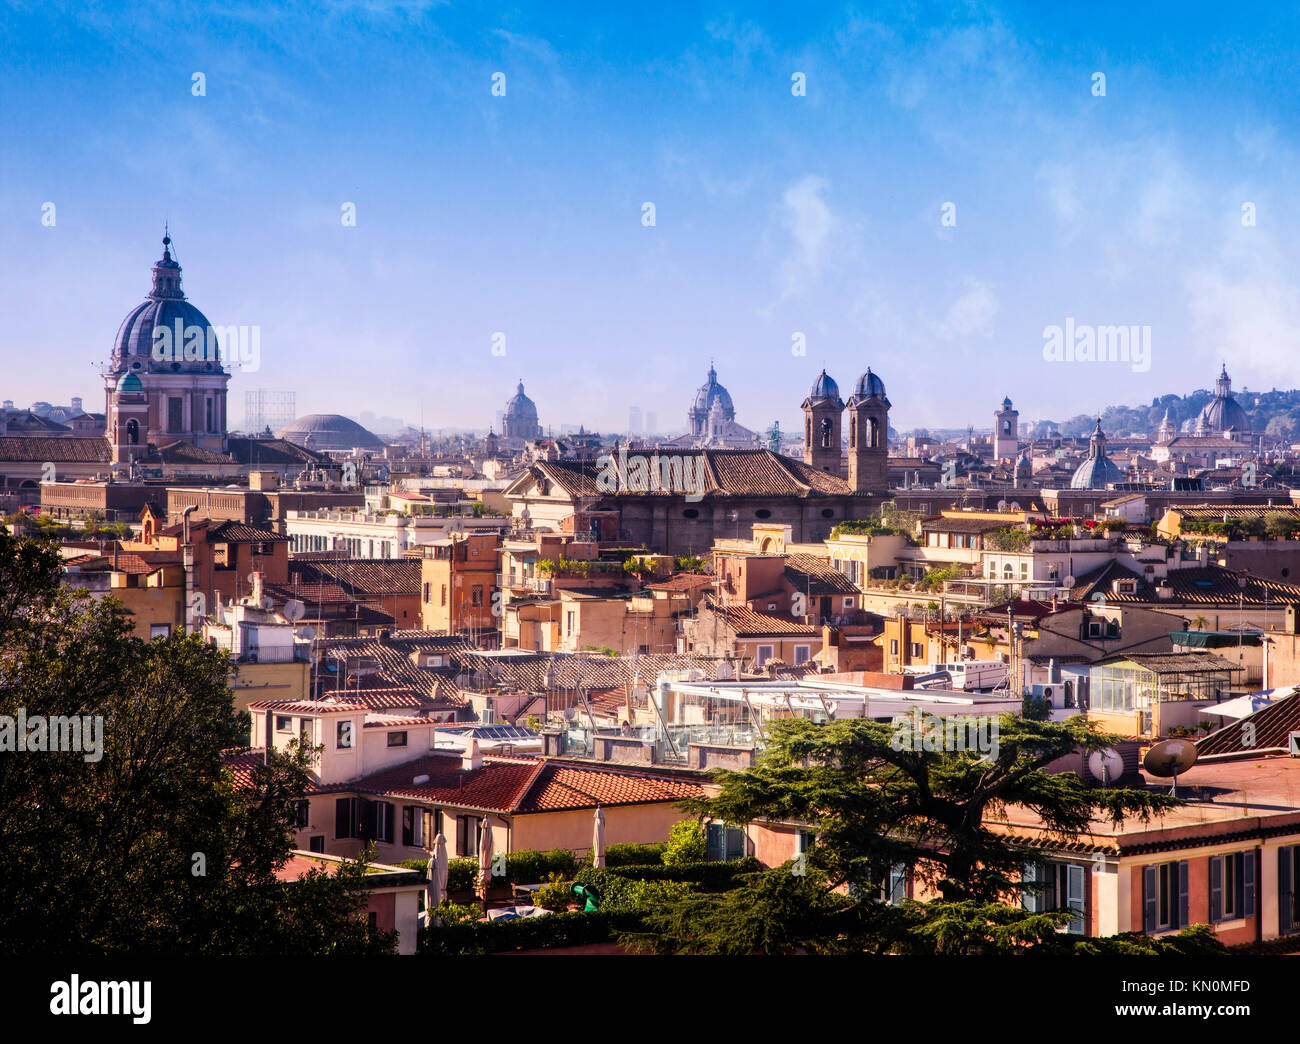 The skyline of Rome, Italy. - Stock Image